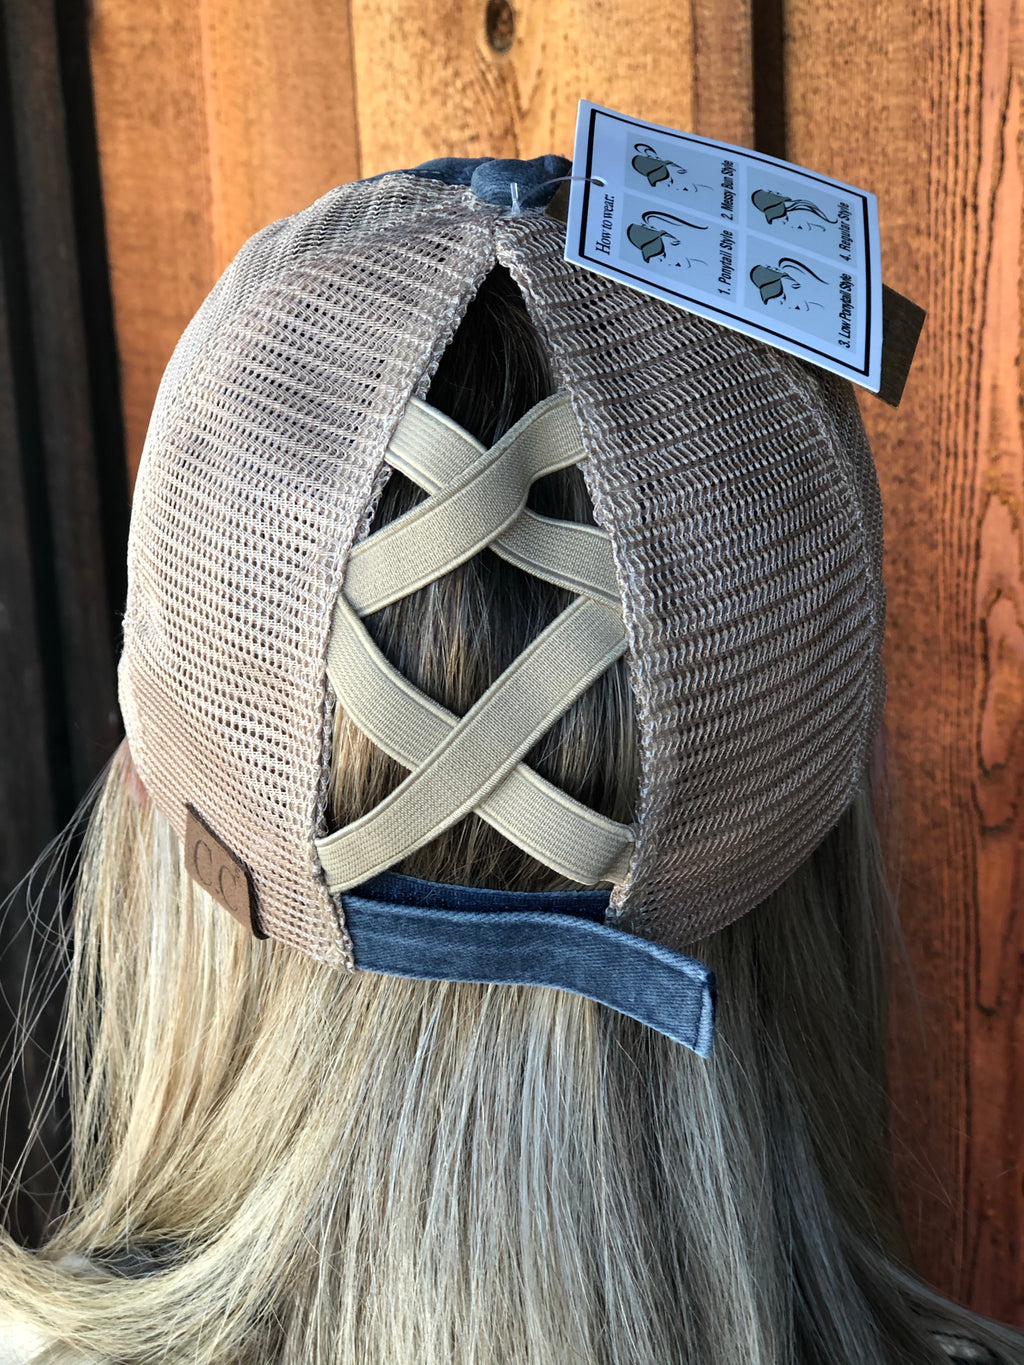 Washed Denim Criss Cross High Pony CC Ball Cap NAVY